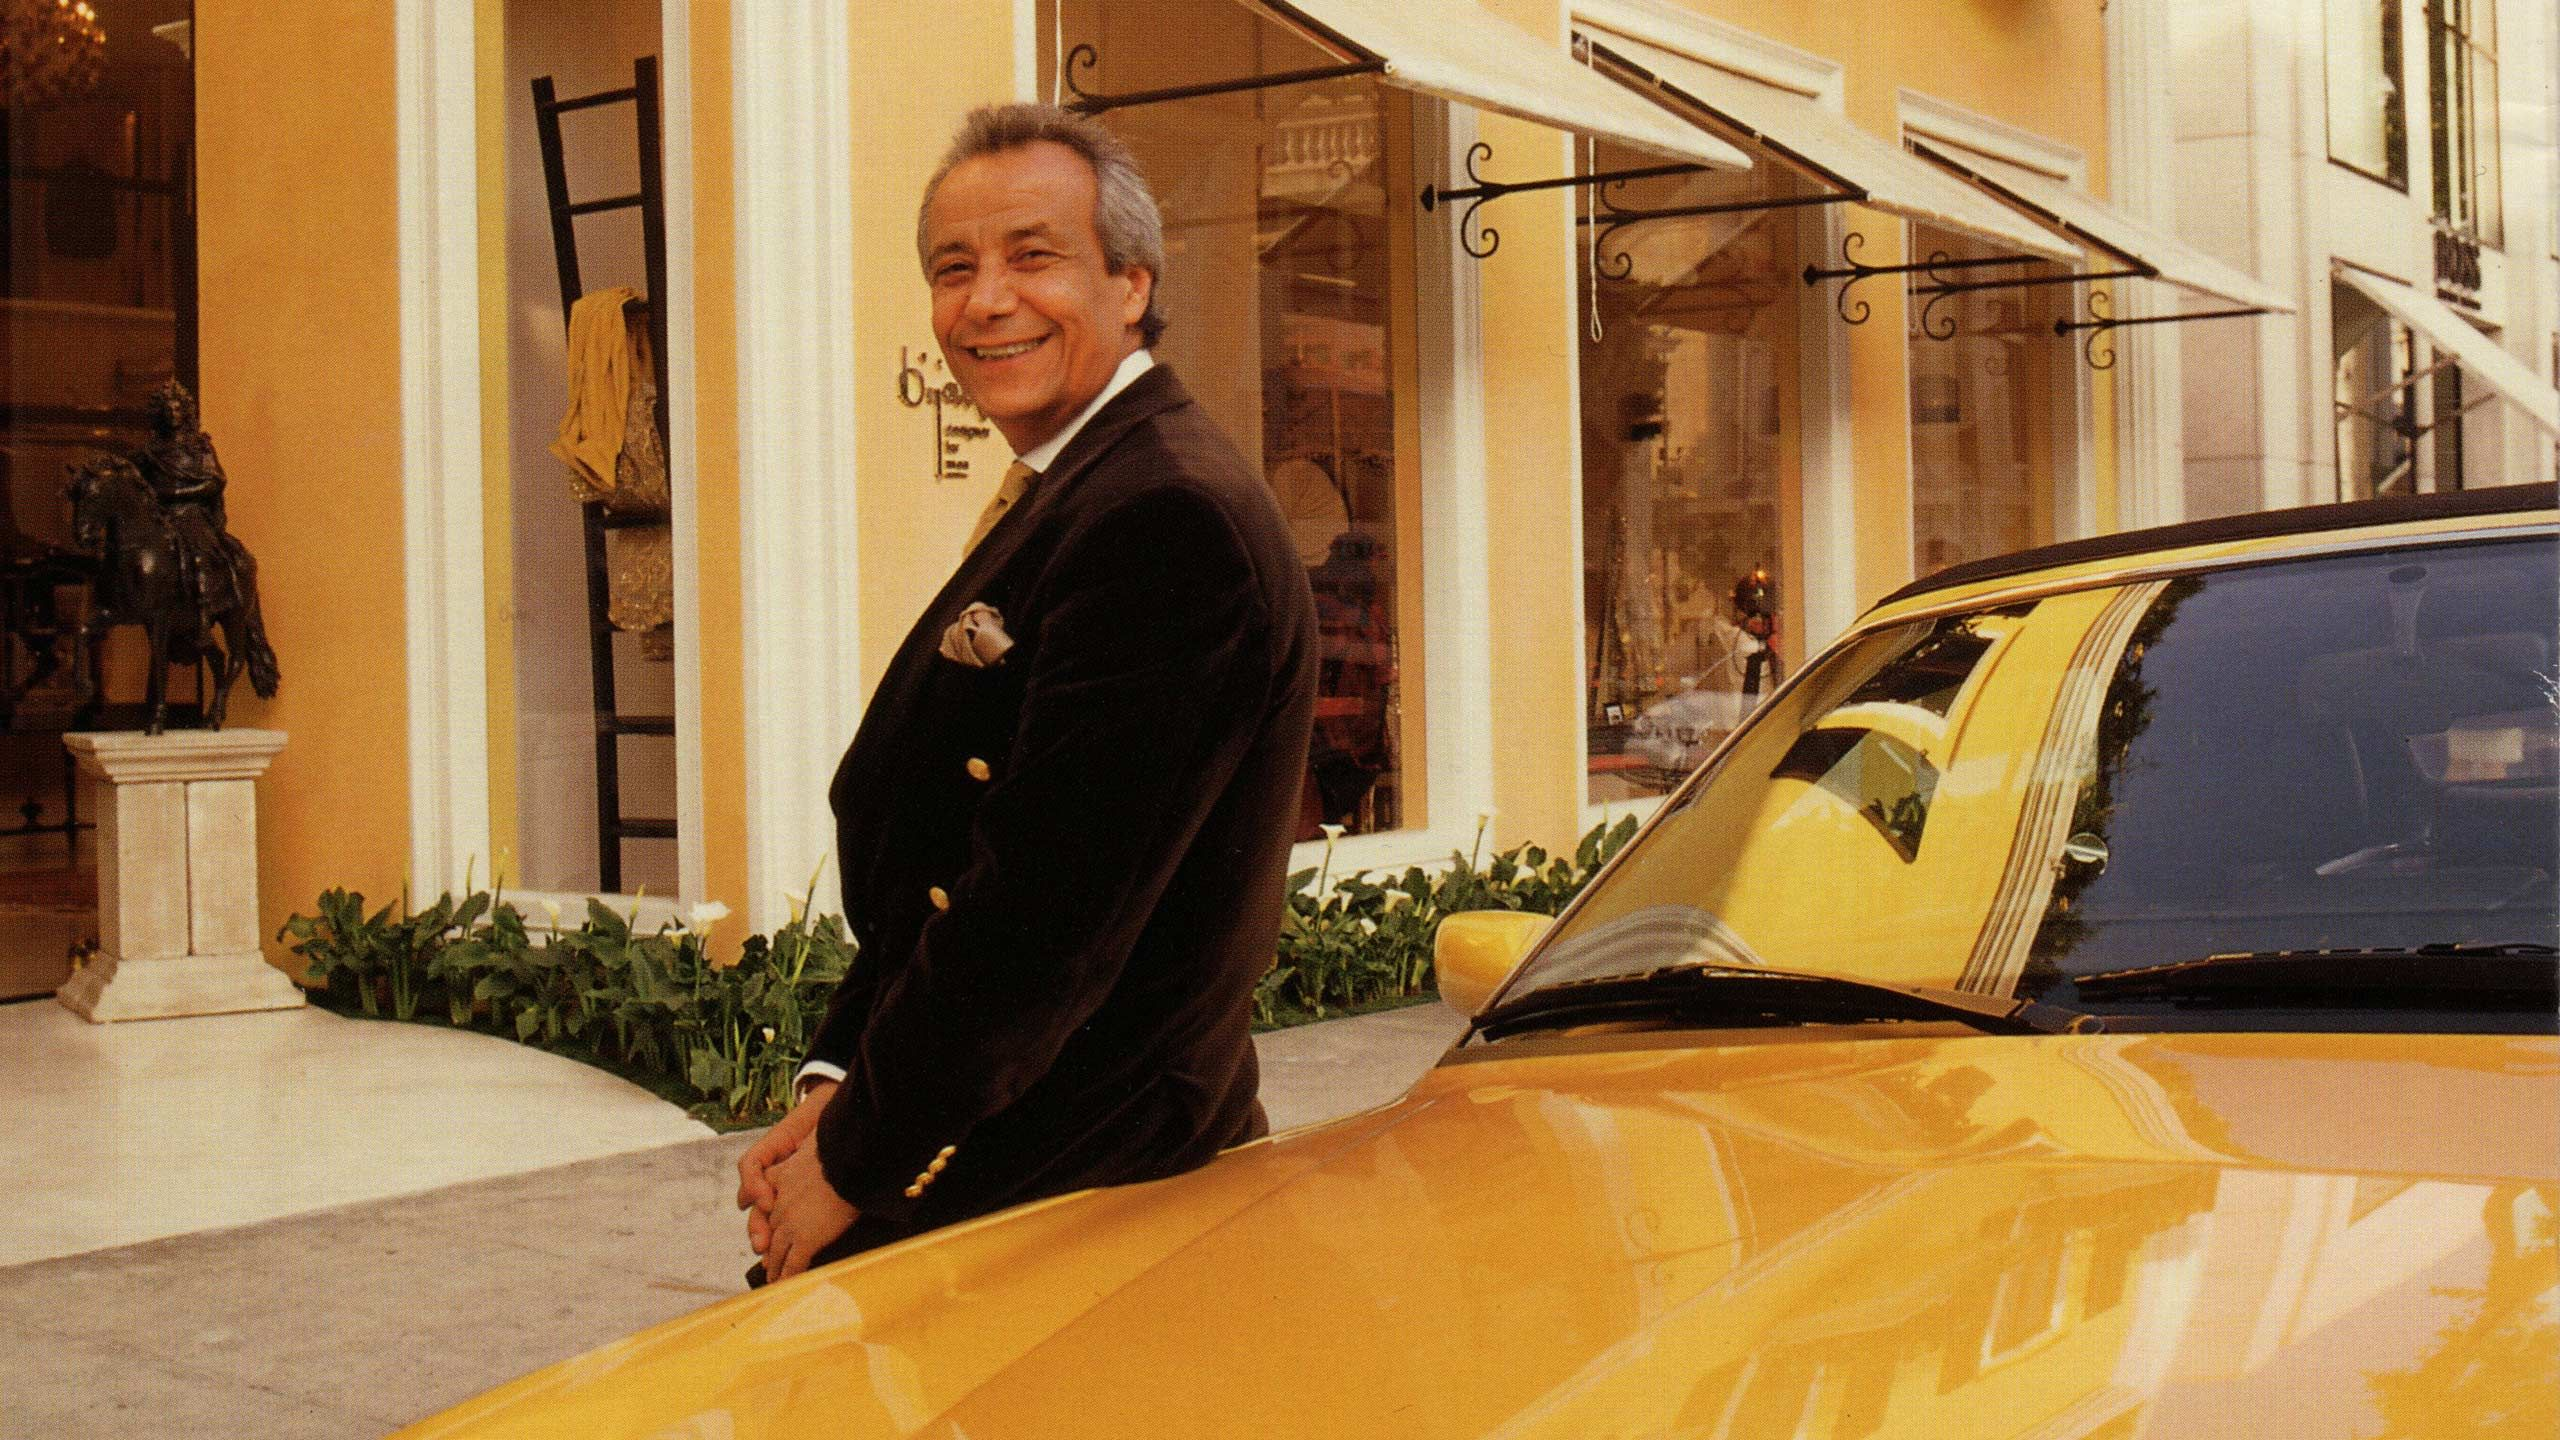 Bijan posing in front of his store in Beverly Hills.